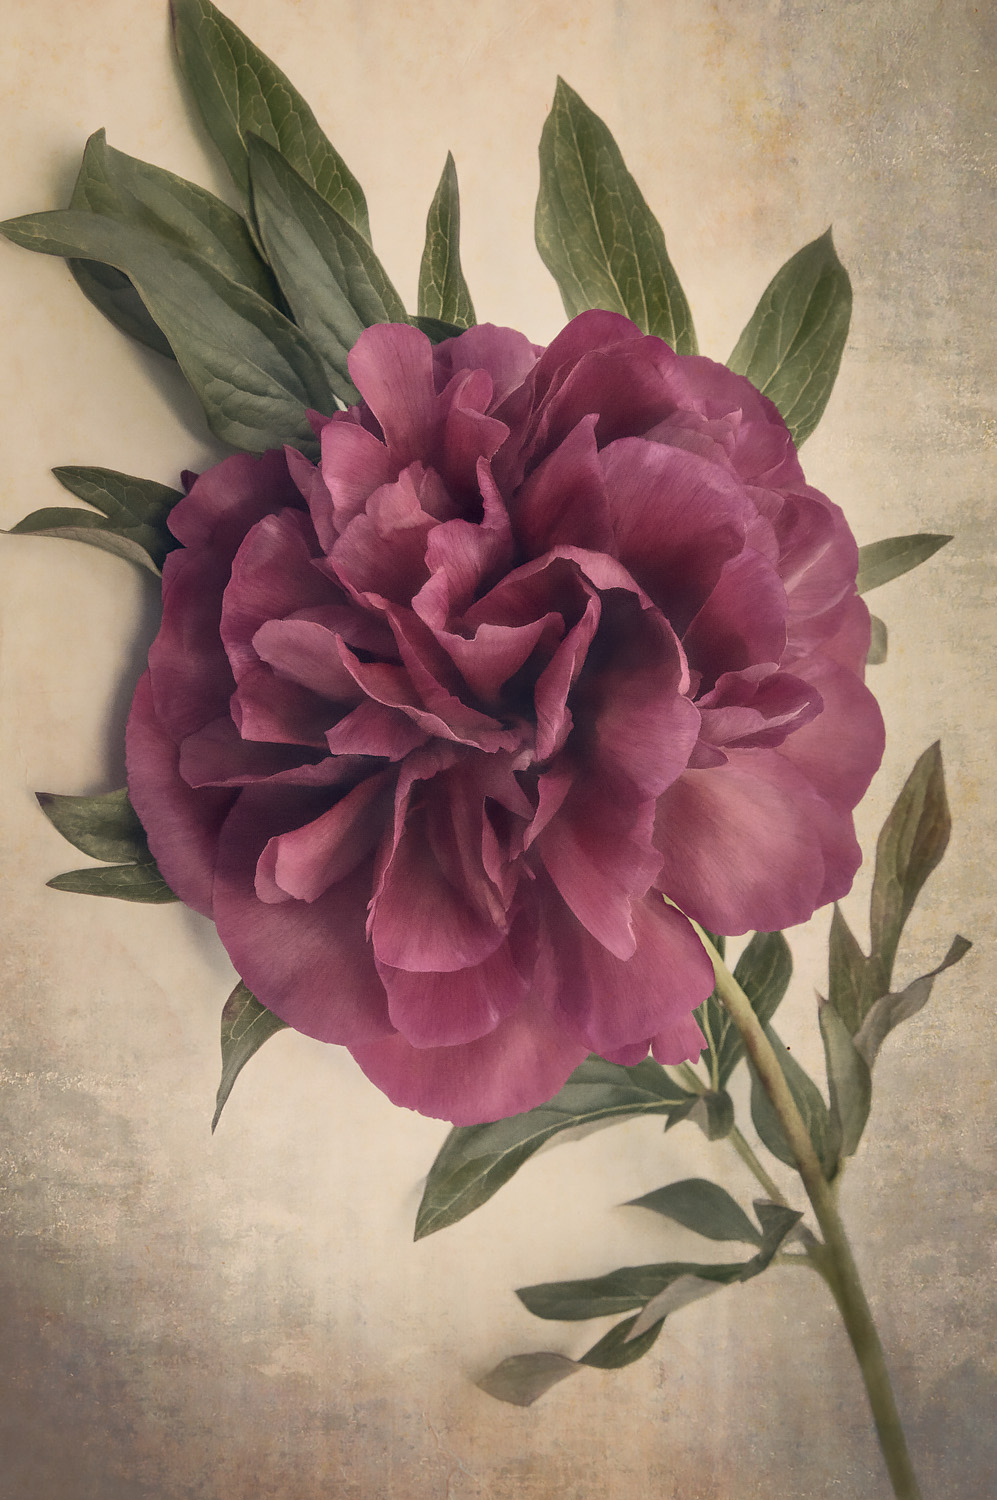 Scents of Spring - Antique Peonies - Burgundy I